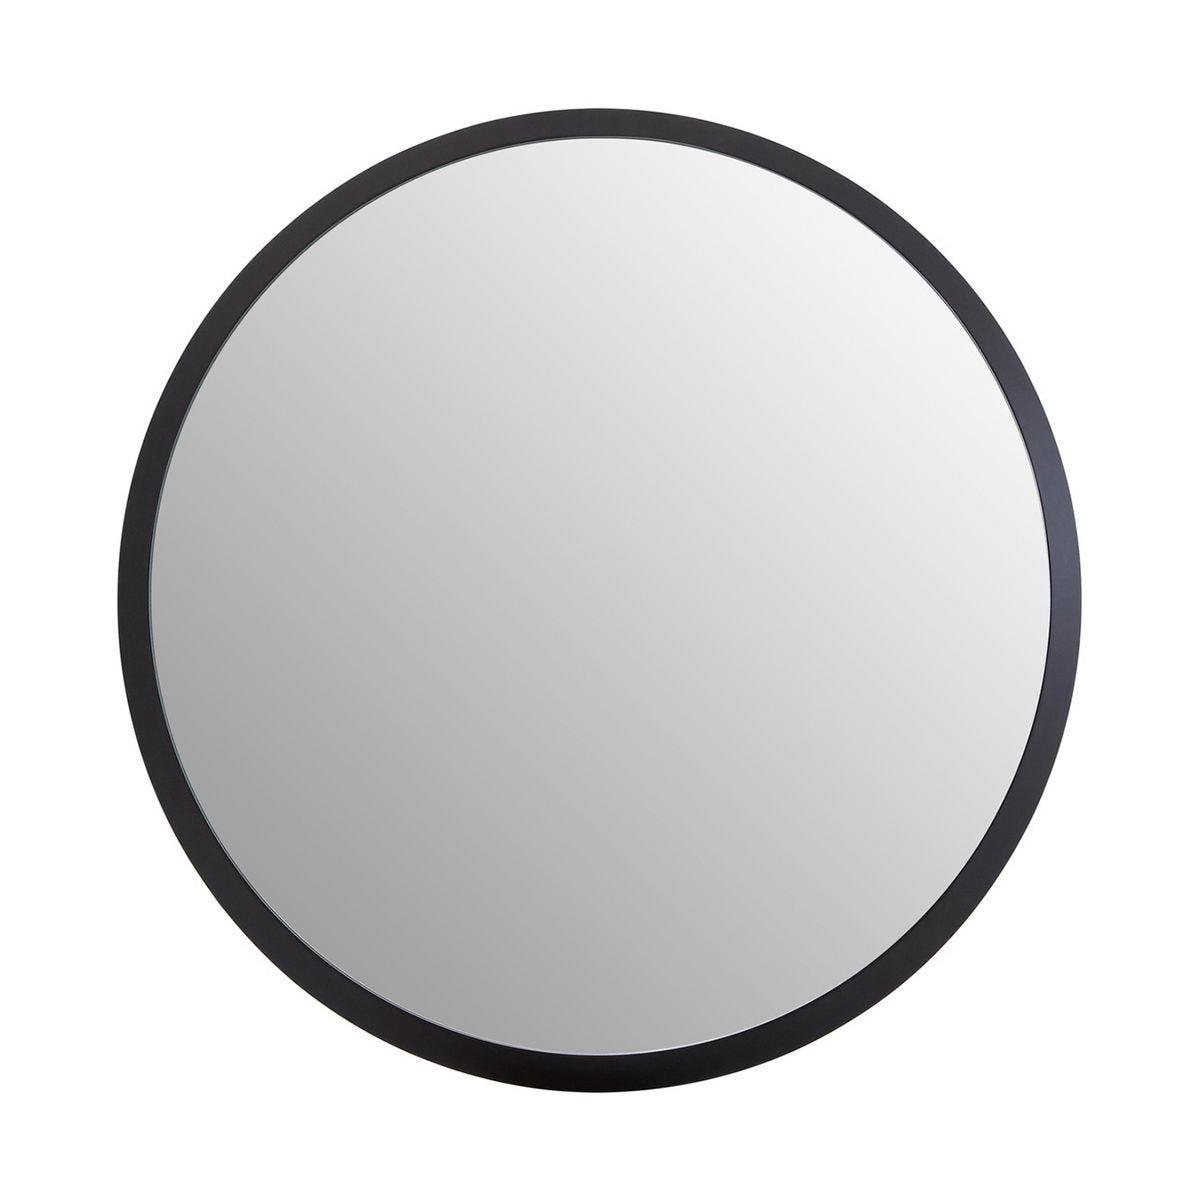 Round Wall Mirror in Black - Small